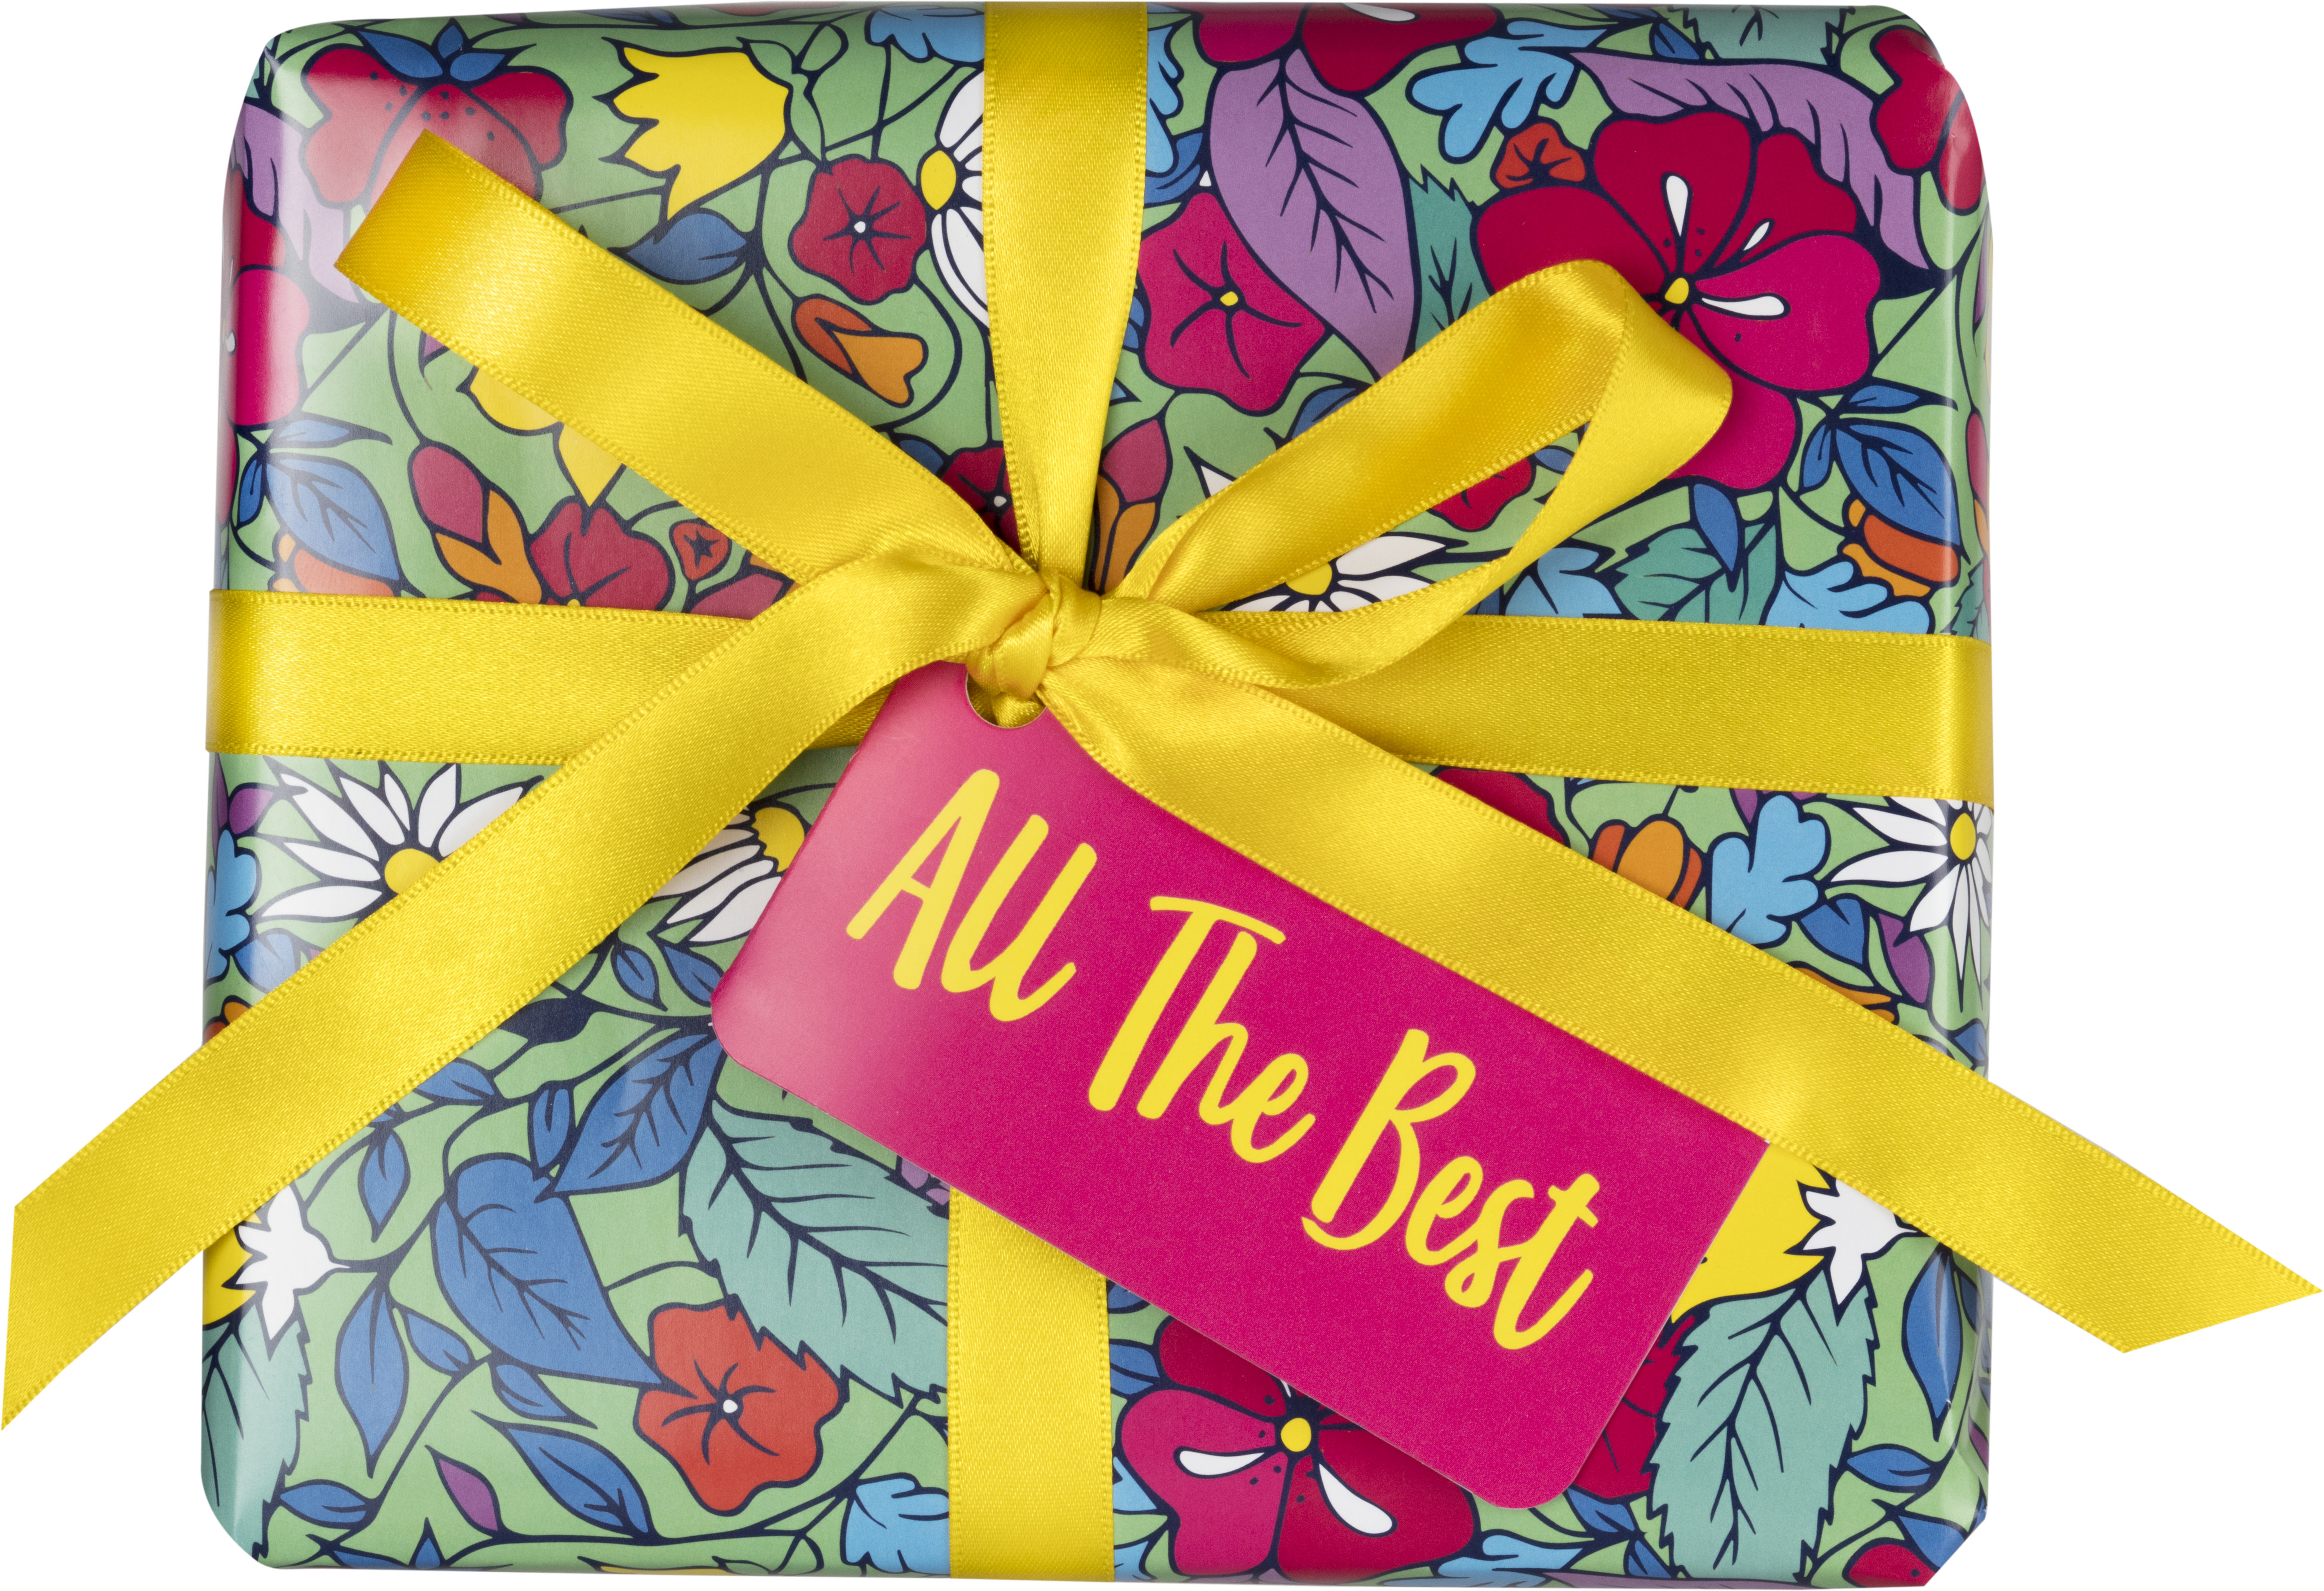 All The Best Nieuw Cadeaus 20 40 Lush Nederland